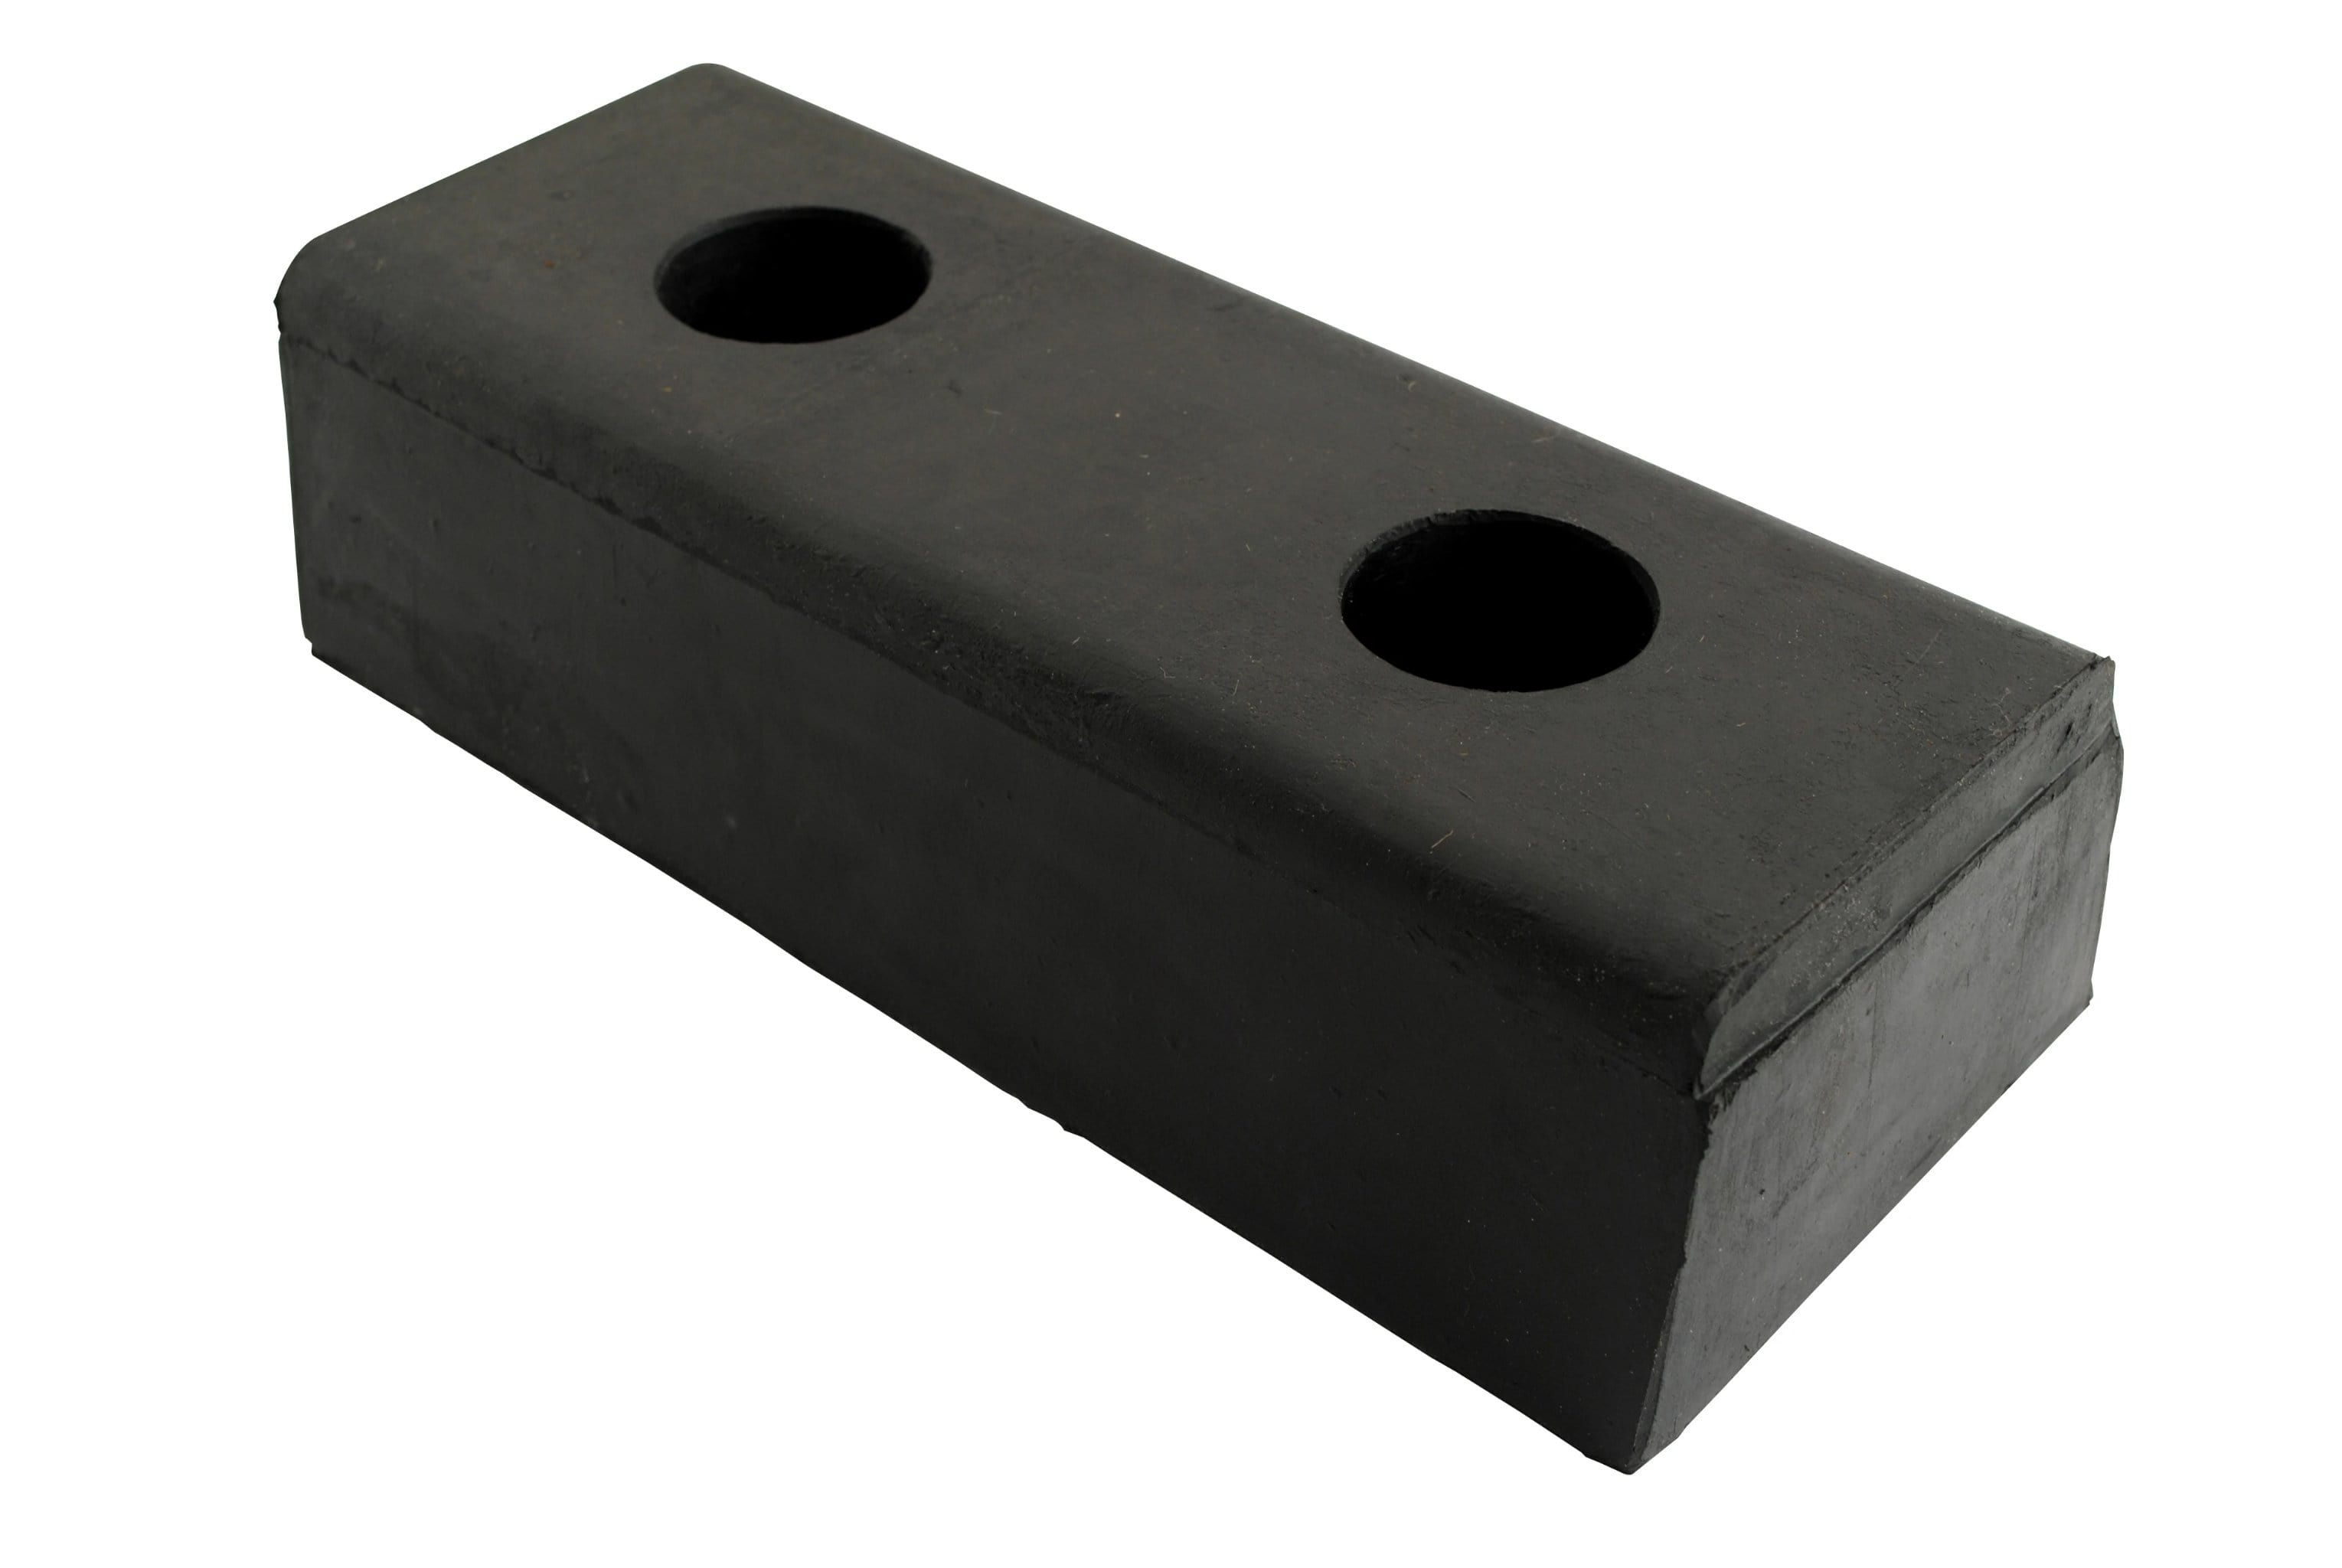 Vestil Molded Rubber Bumper (Qty of 4) - W - 10 in x H - 4-1/2 in x D - 3 in - Model DBE-10-4